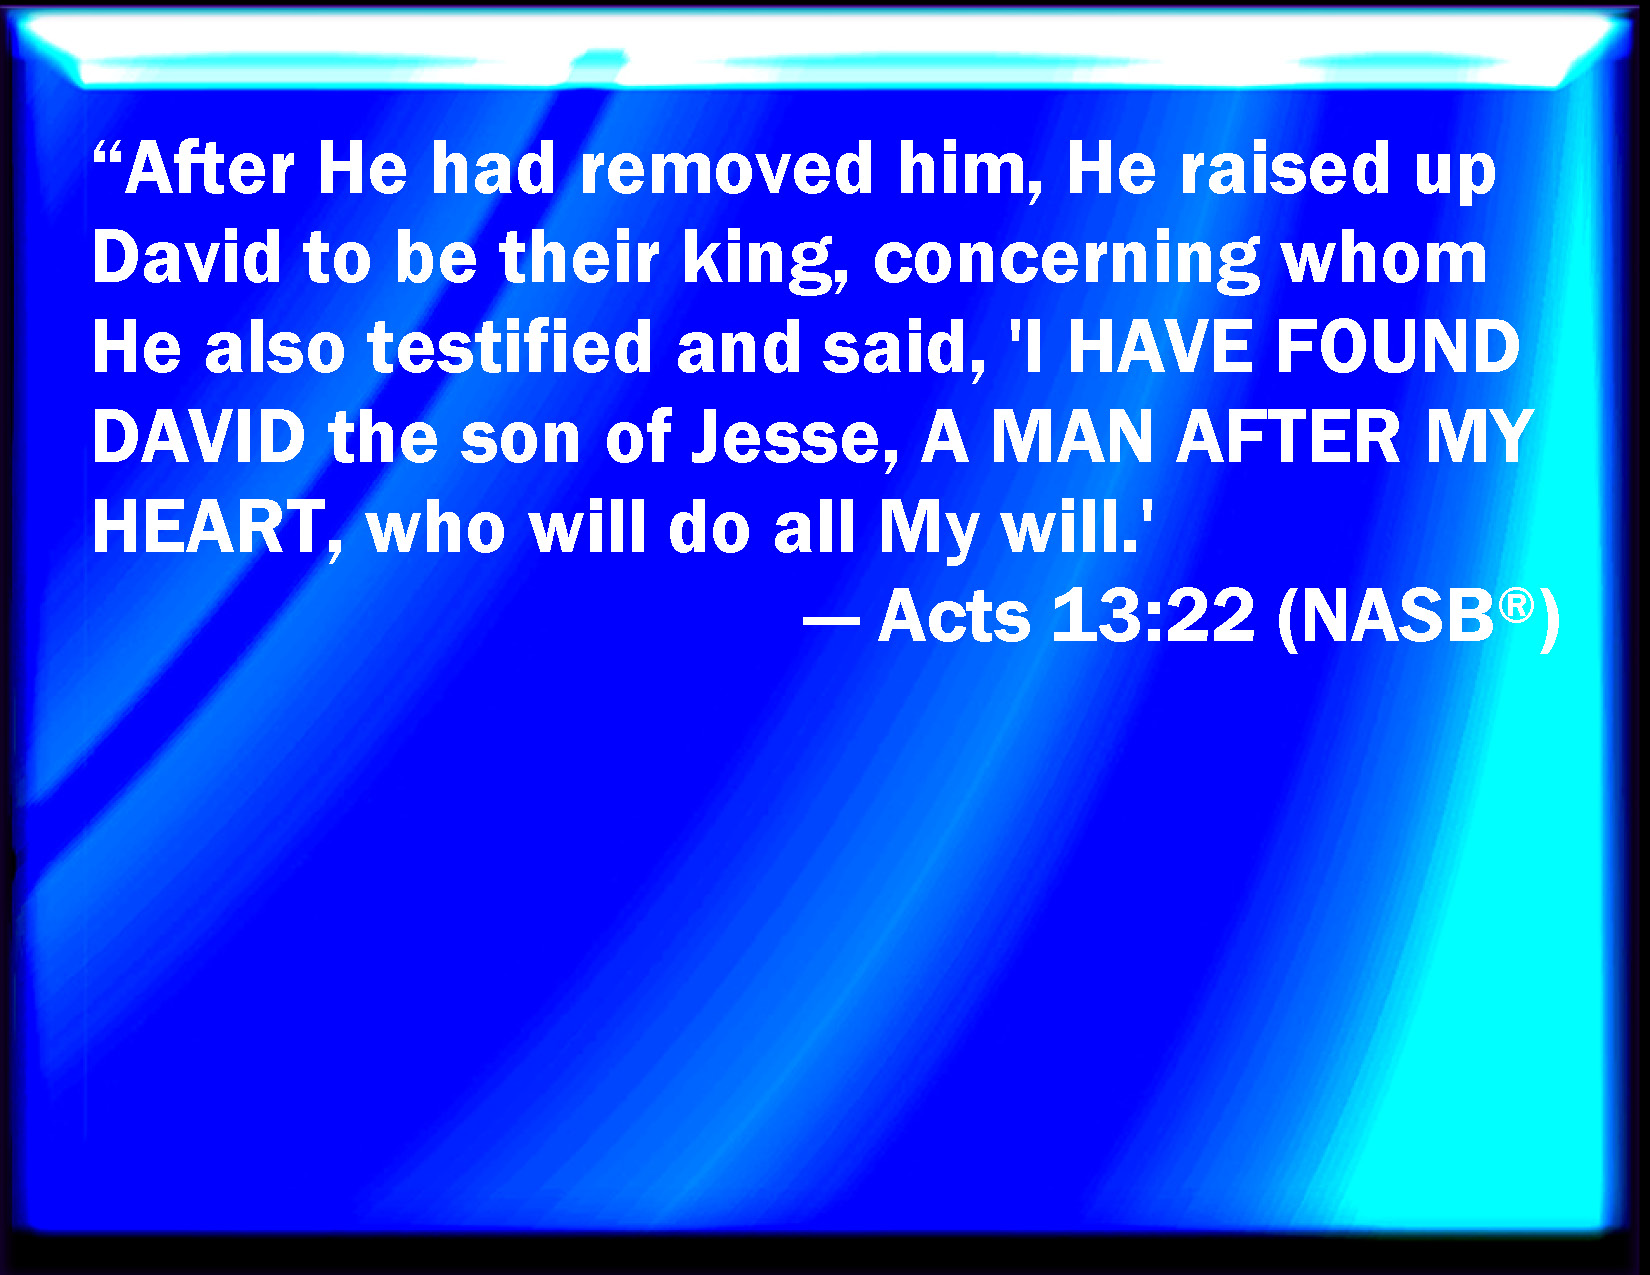 Acts 13 22